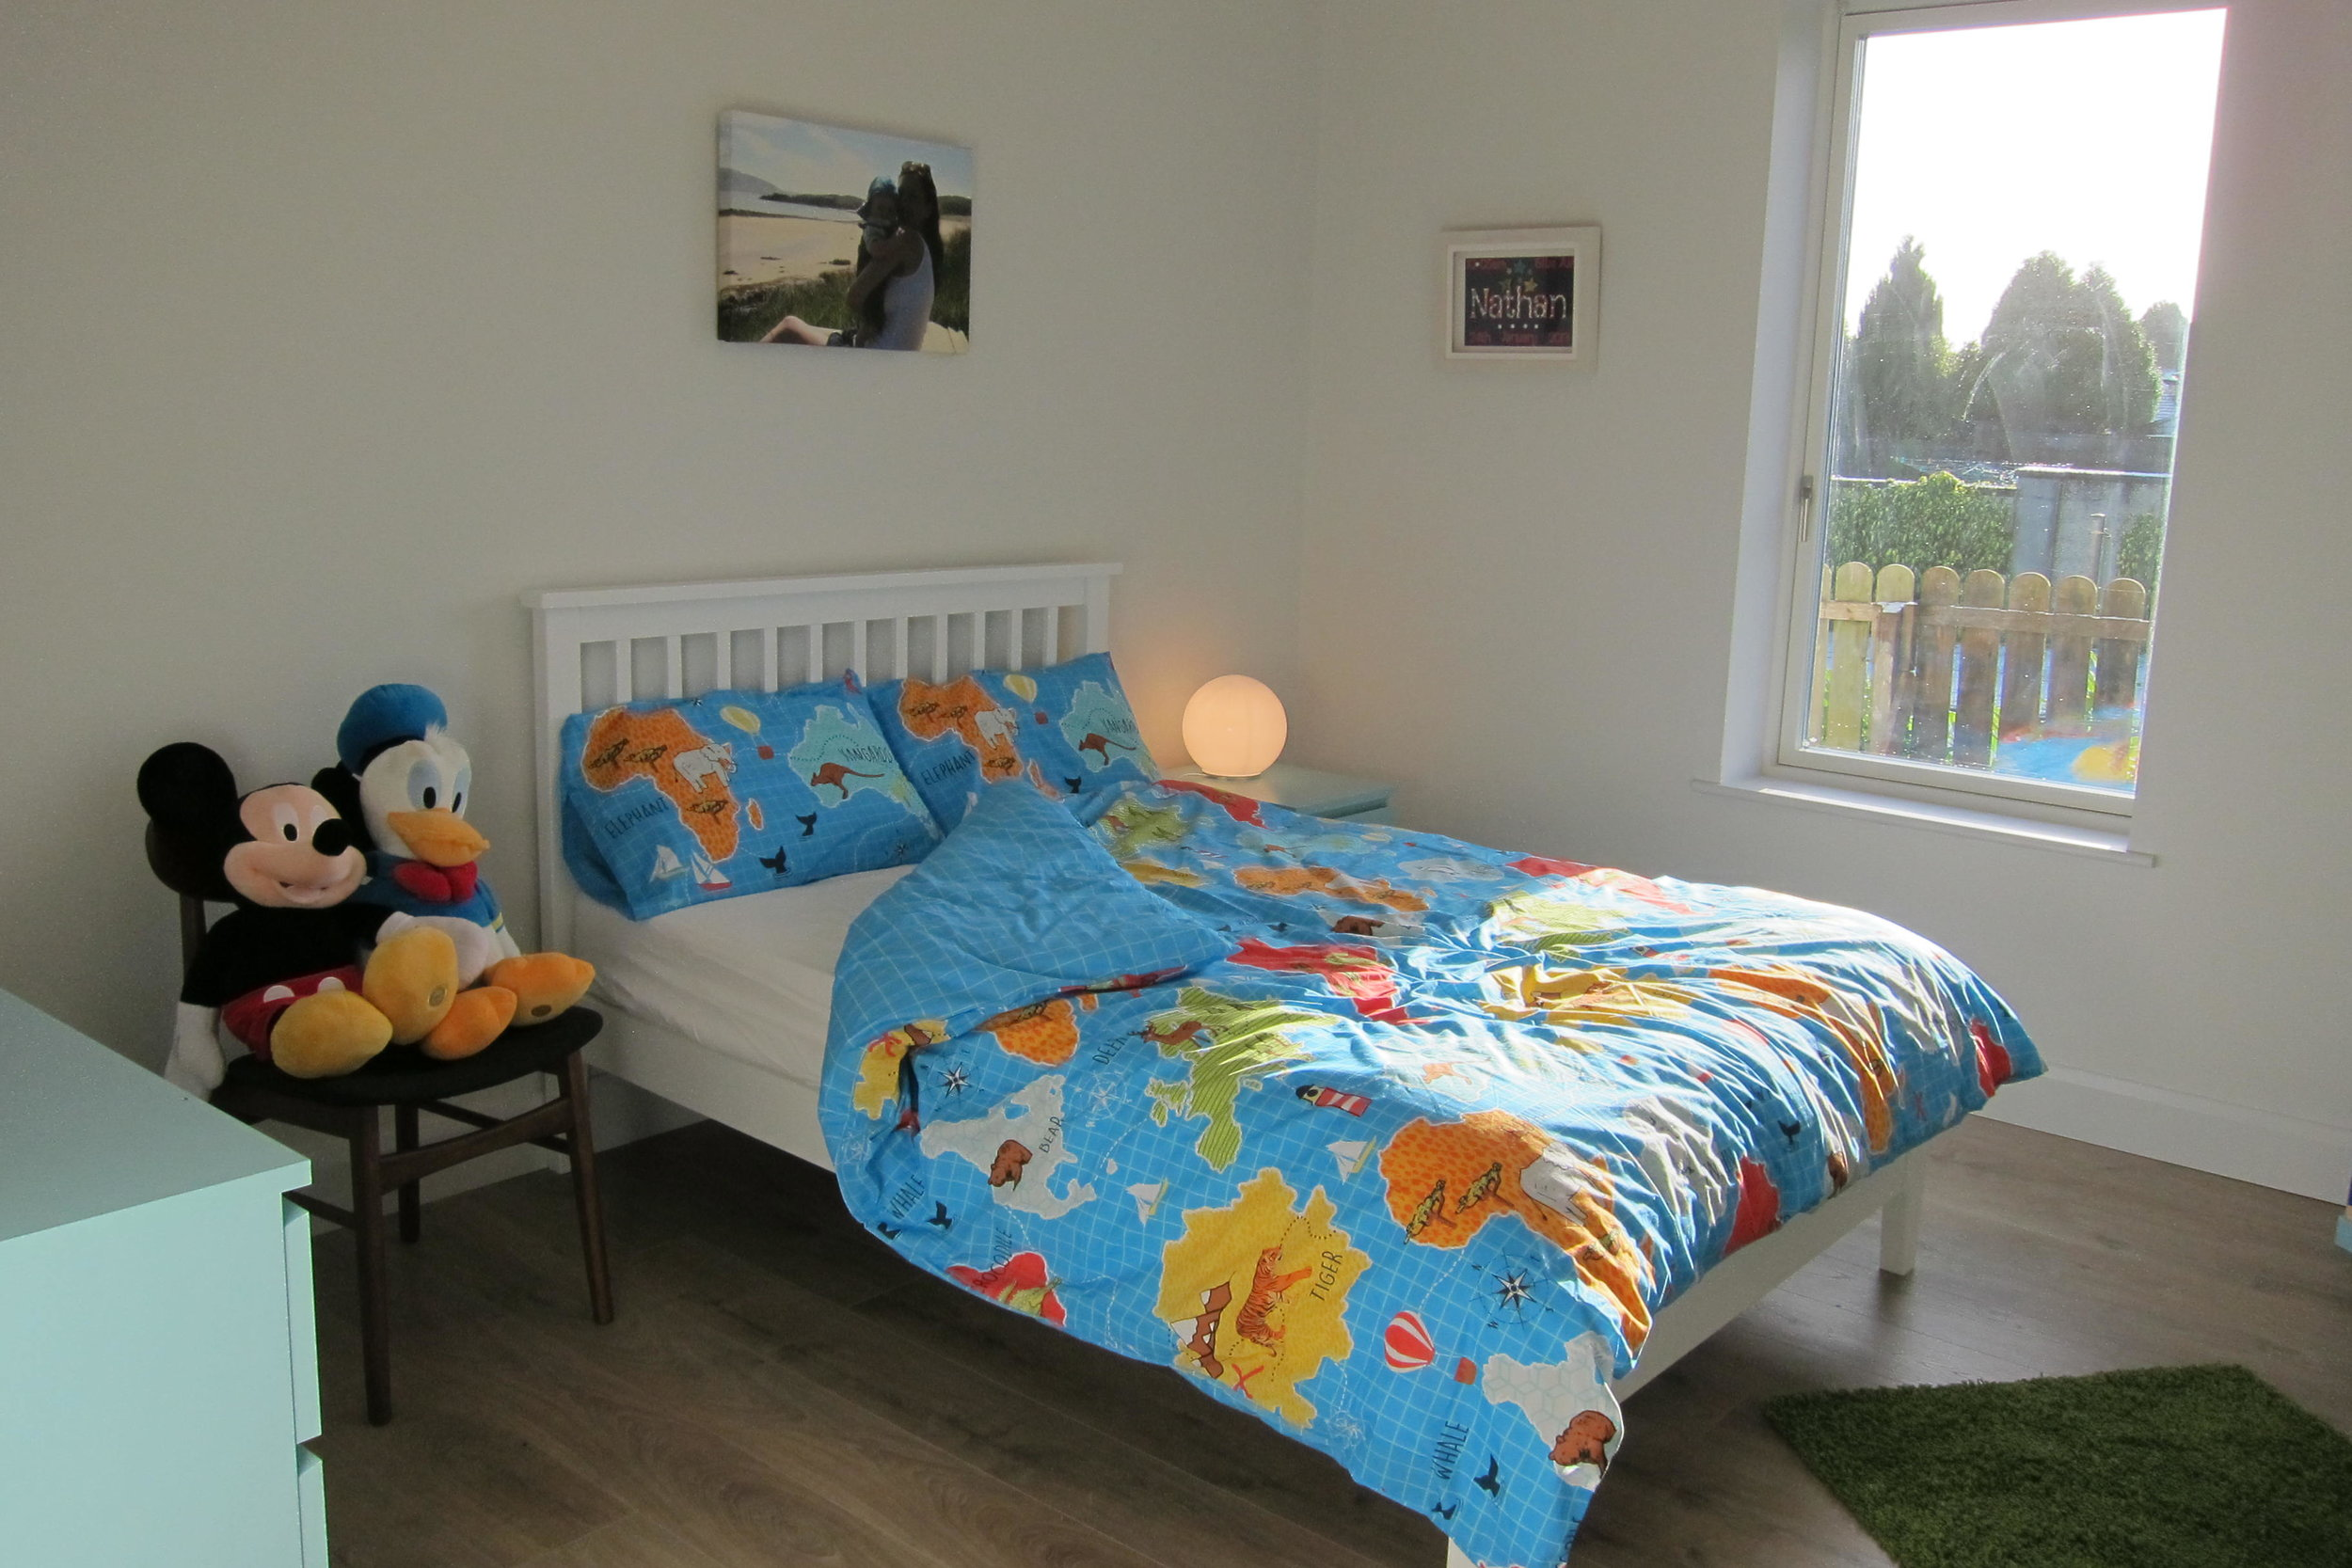 TX3 RTI10 Moate AFTER Nathans Bedroom  - Copy.JPG